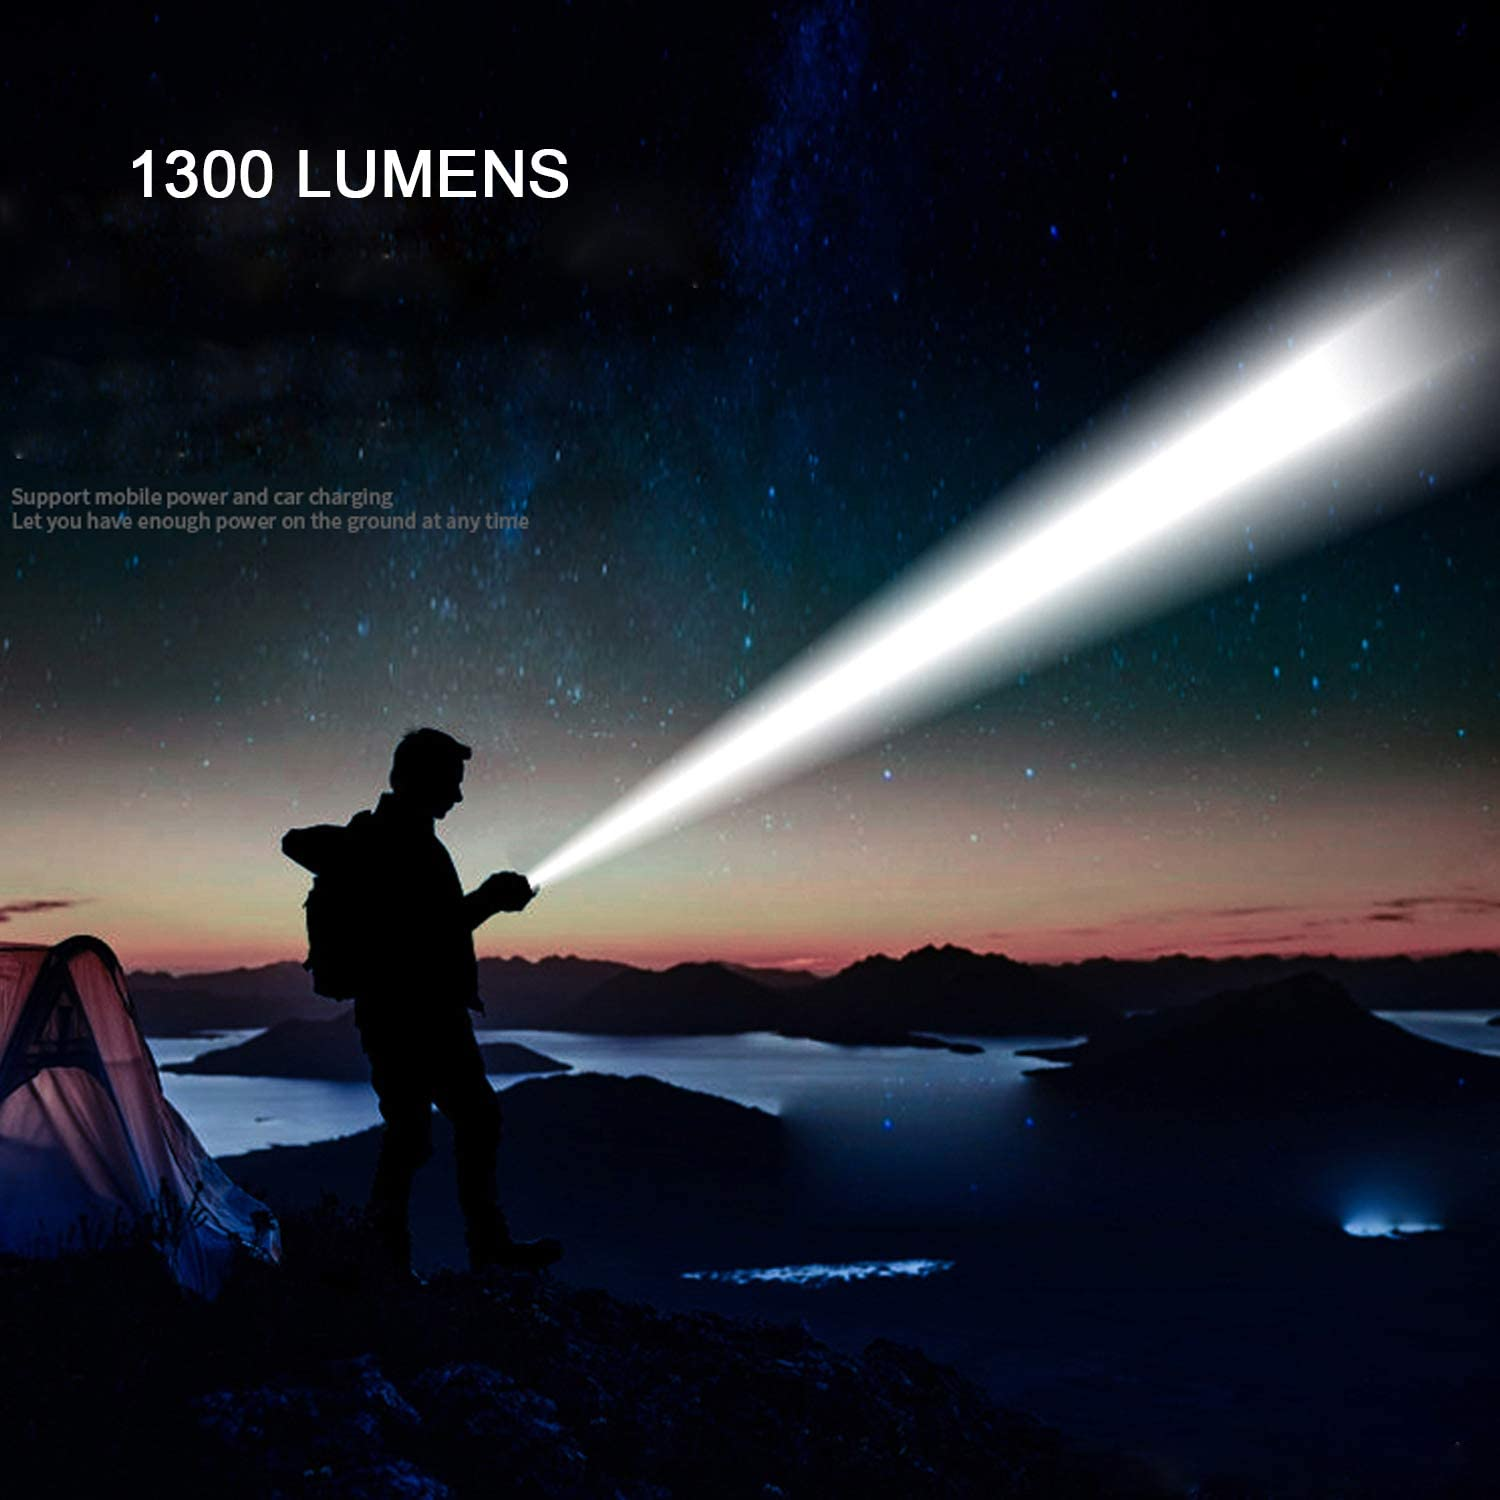 Emergency Use Ultra Bright Flashlight with 1300 Lumens 26650 Battery Rechargeable Pocket-Sized LED Tactical Flashlight with CREE LED Security 5 Light Modes for Camping IP65 Waterproof